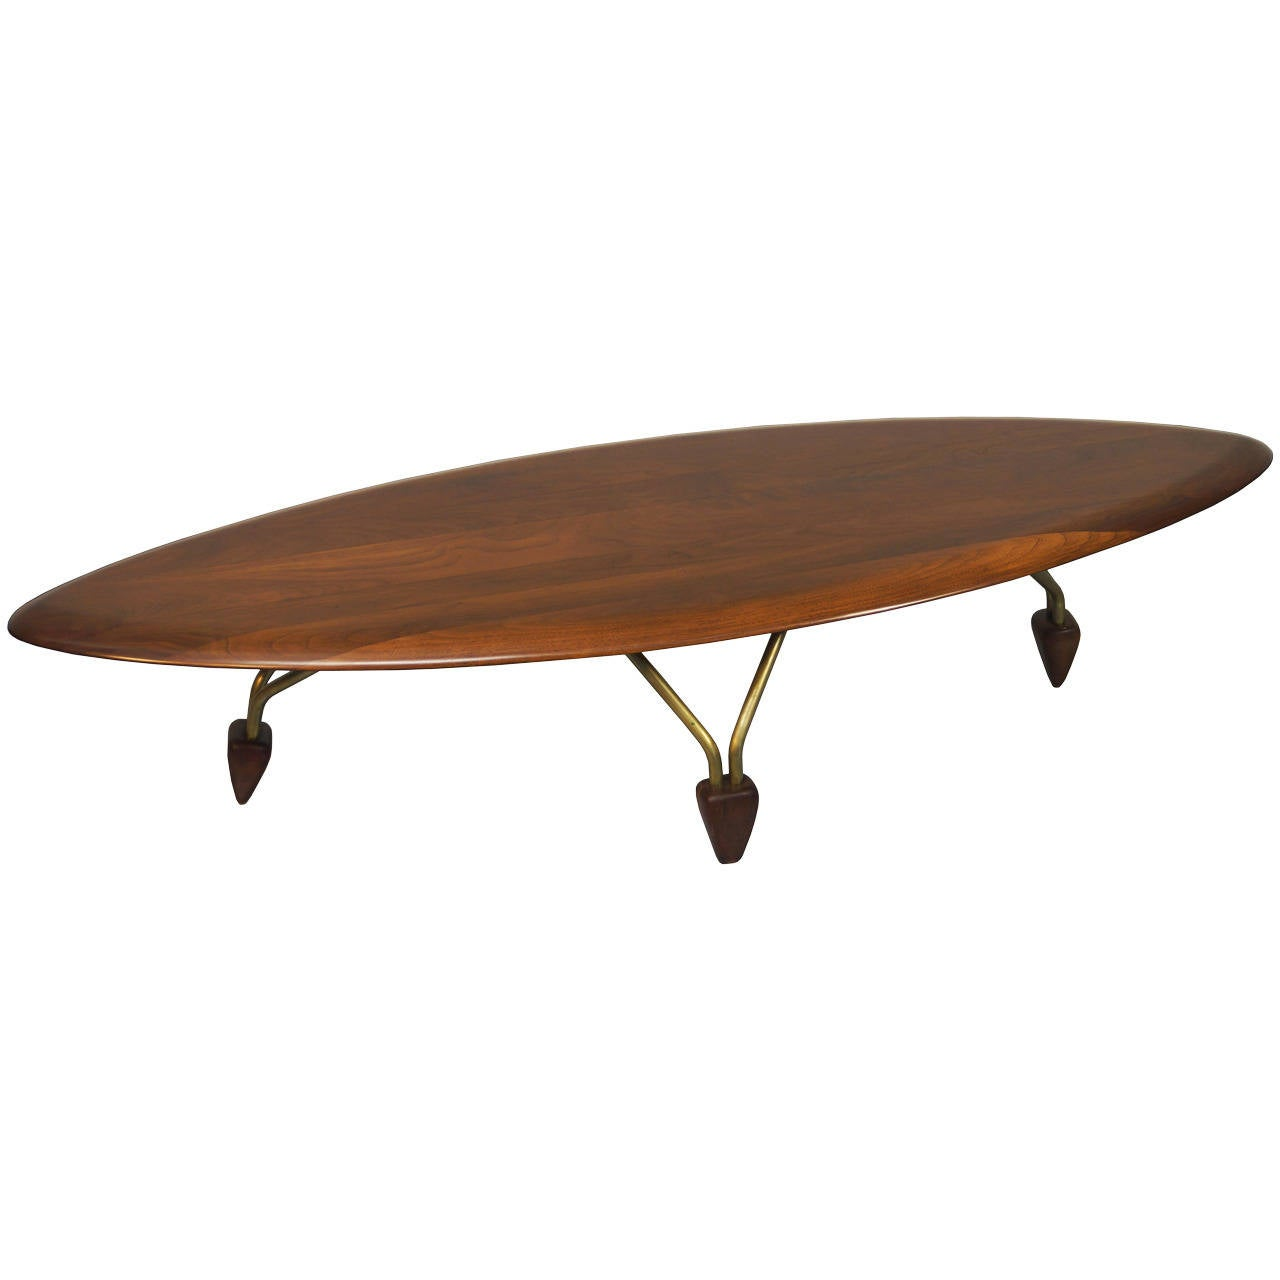 Vintage Walnut Surfboard Coffee Table By John Keal At 1stdibs